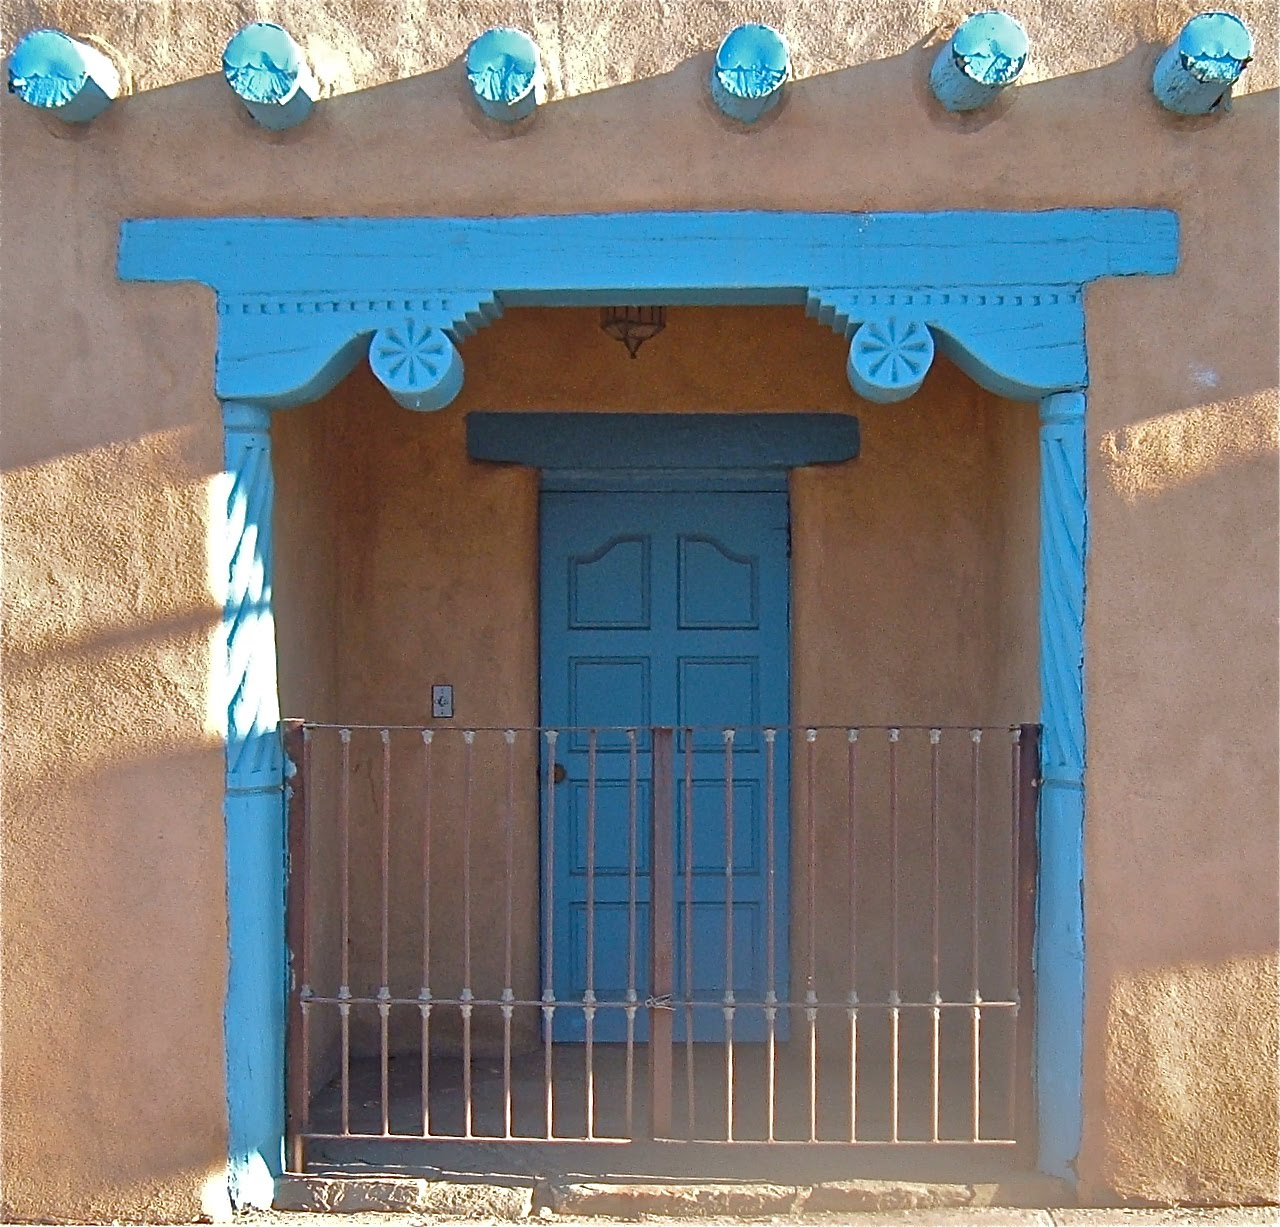 Two Graces Taos & Two Graces Taos: \u201cThe Secret of Taos Blue Doors\u201d Robert Cafazzo ...